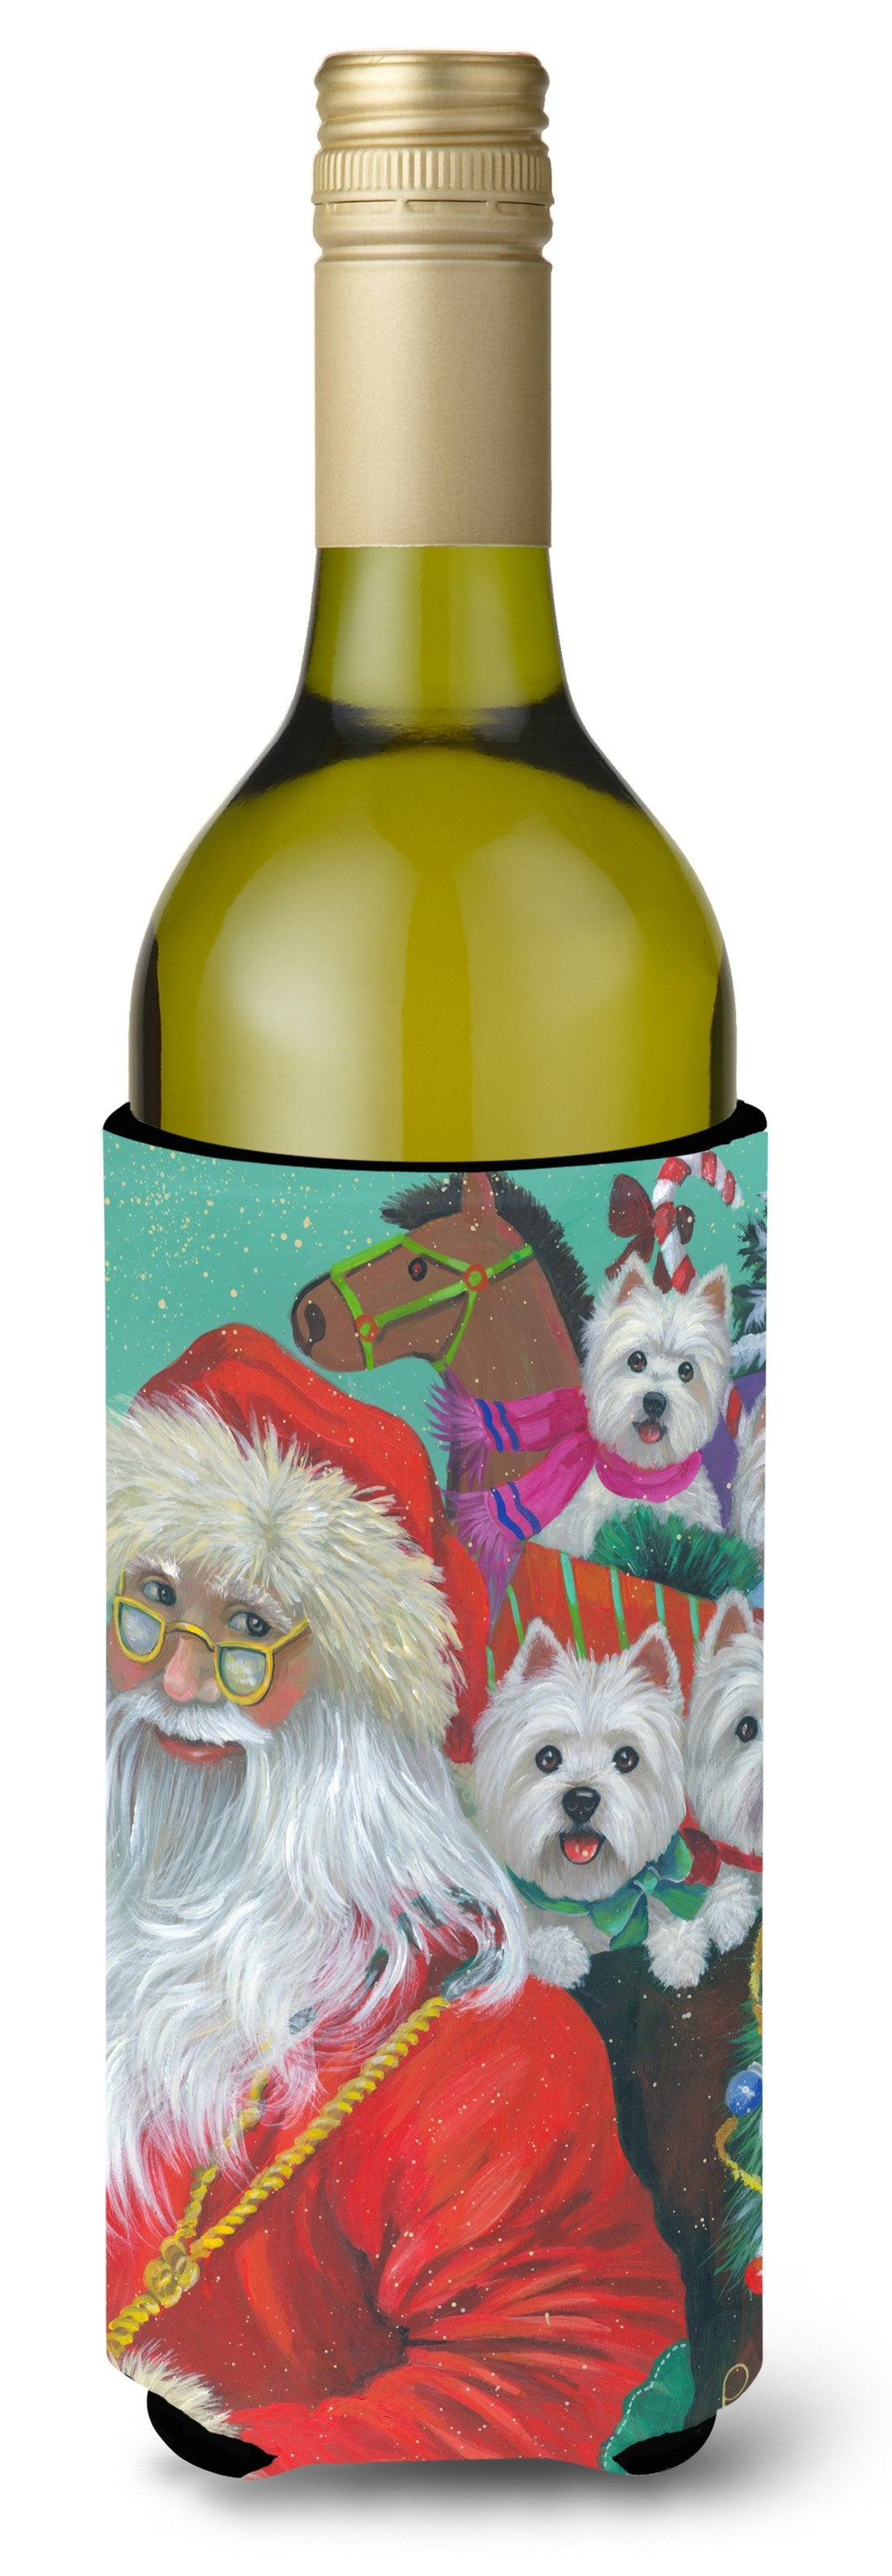 Westie Christmas Santa's Westies Wine Bottle Hugger PPP3229LITERK by Caroline's Treasures